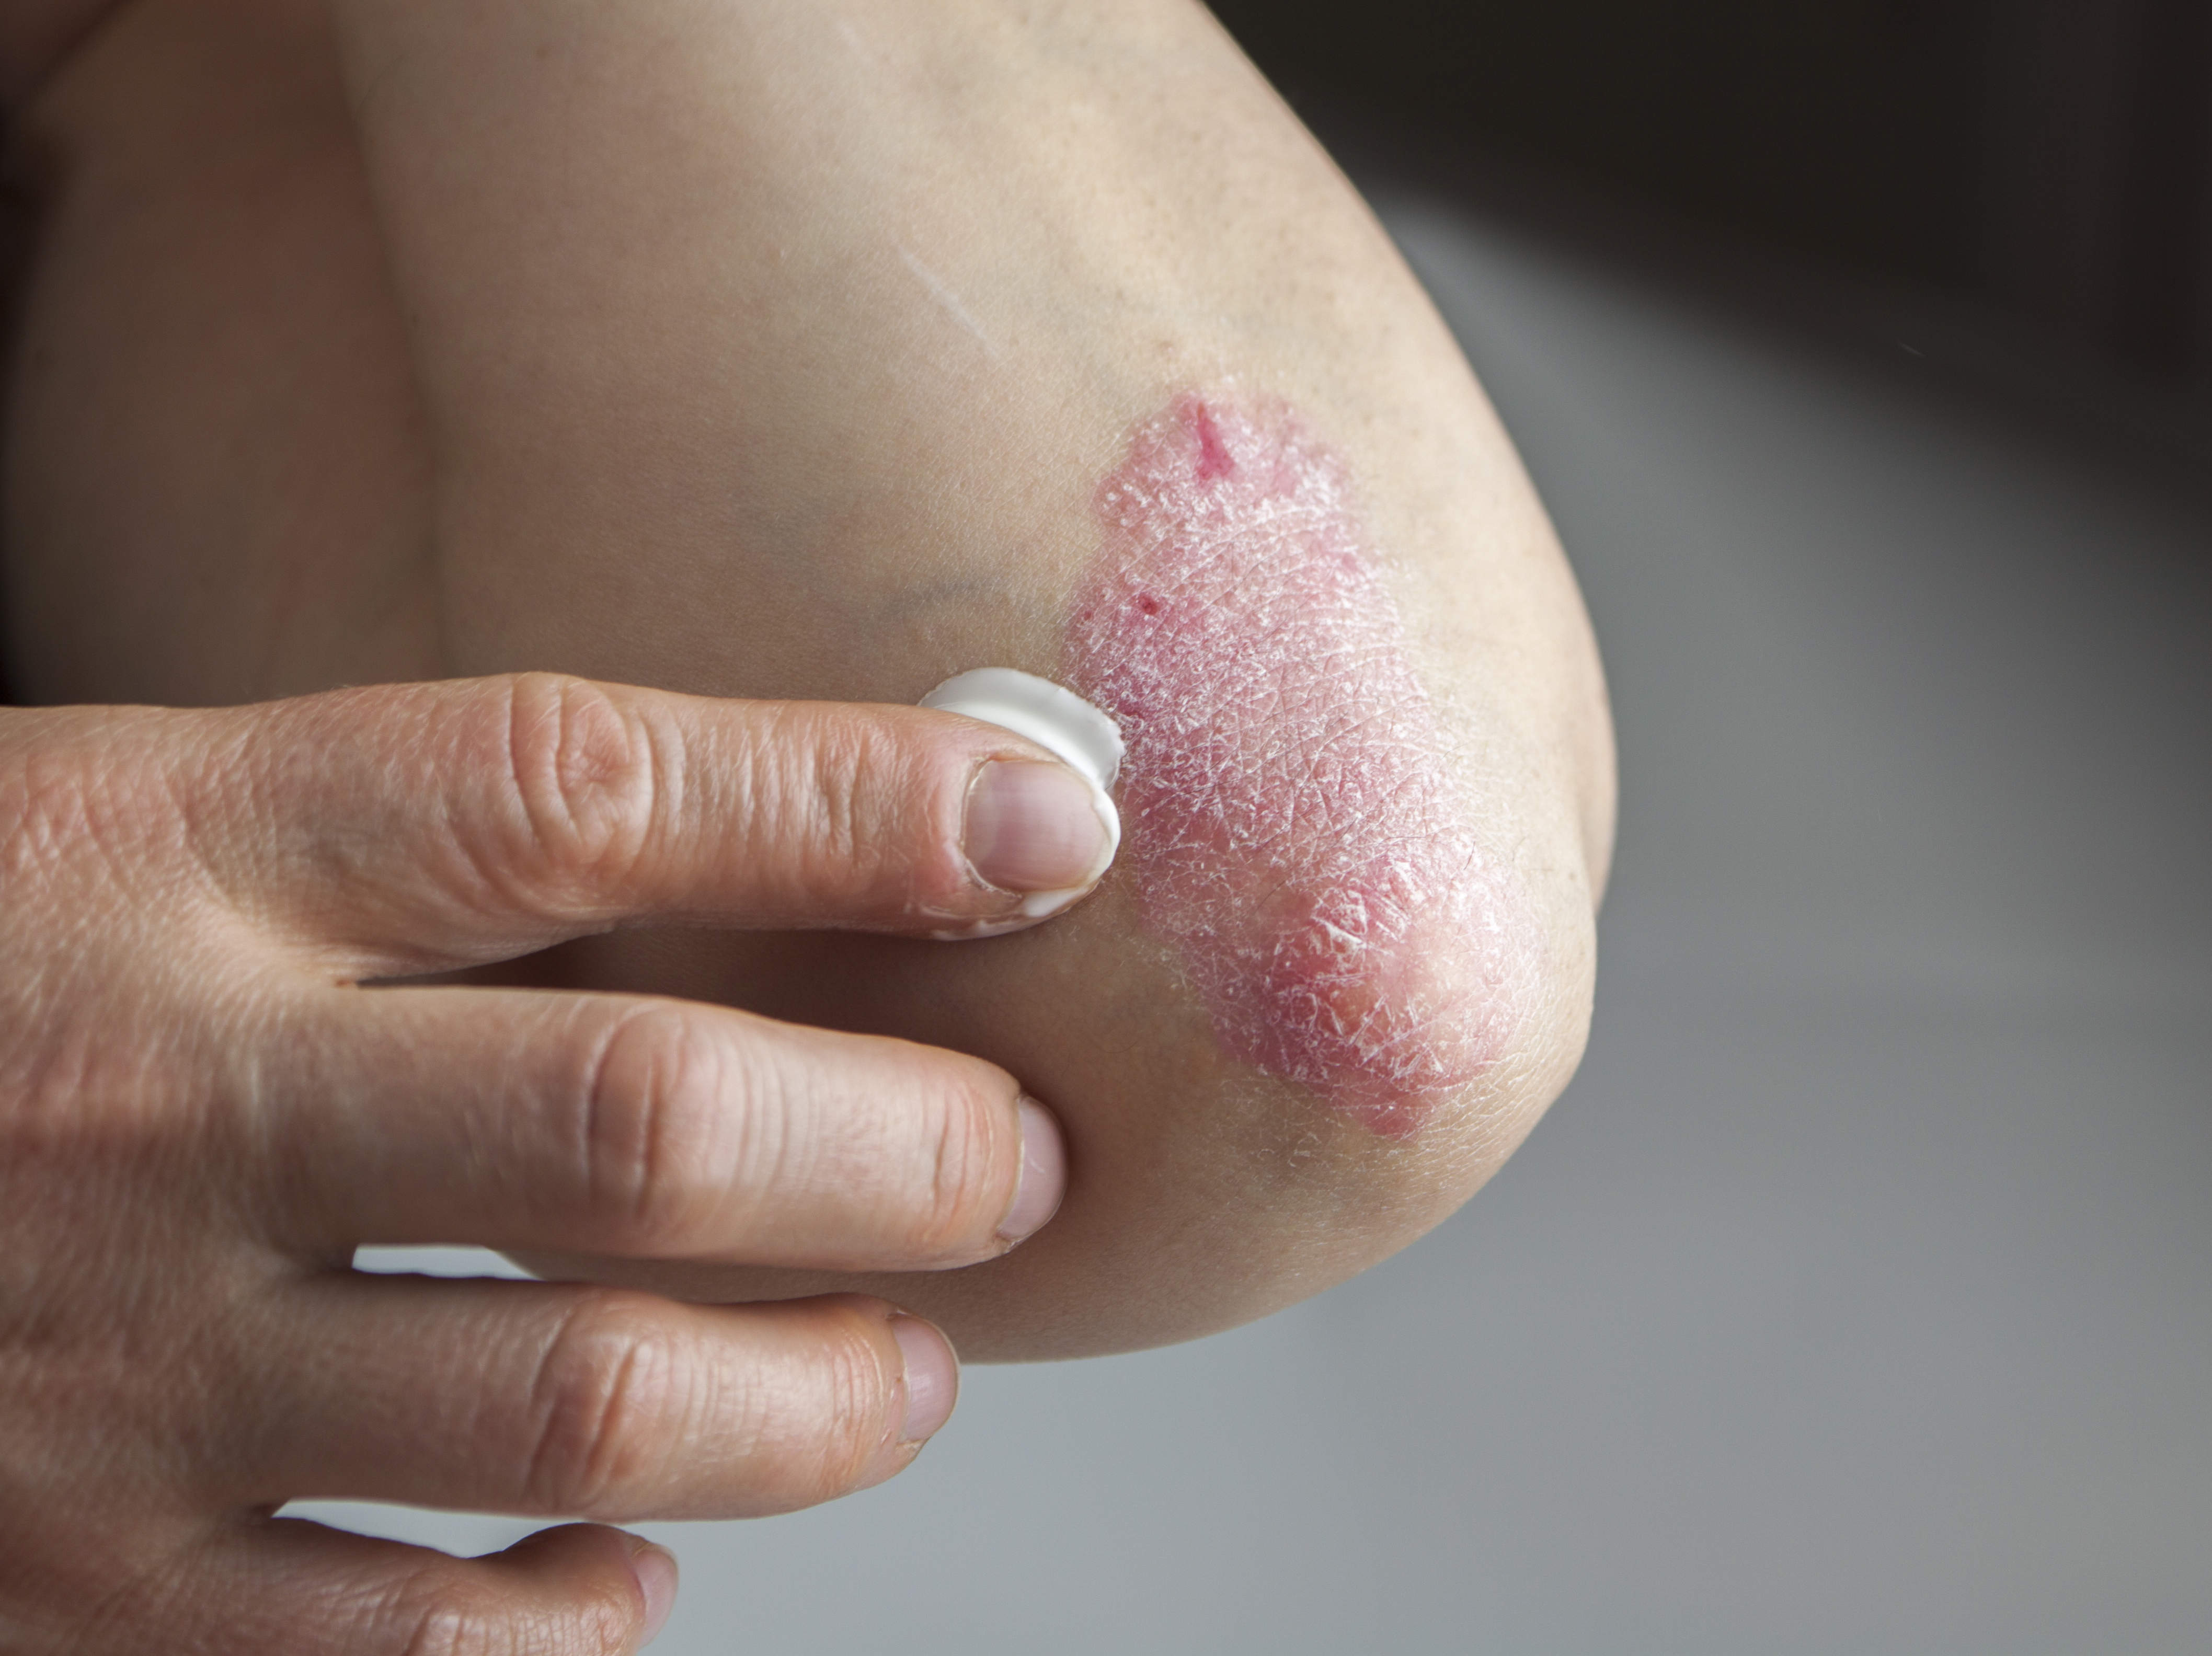 Applying topical cream ointment to psoriasis on elbow